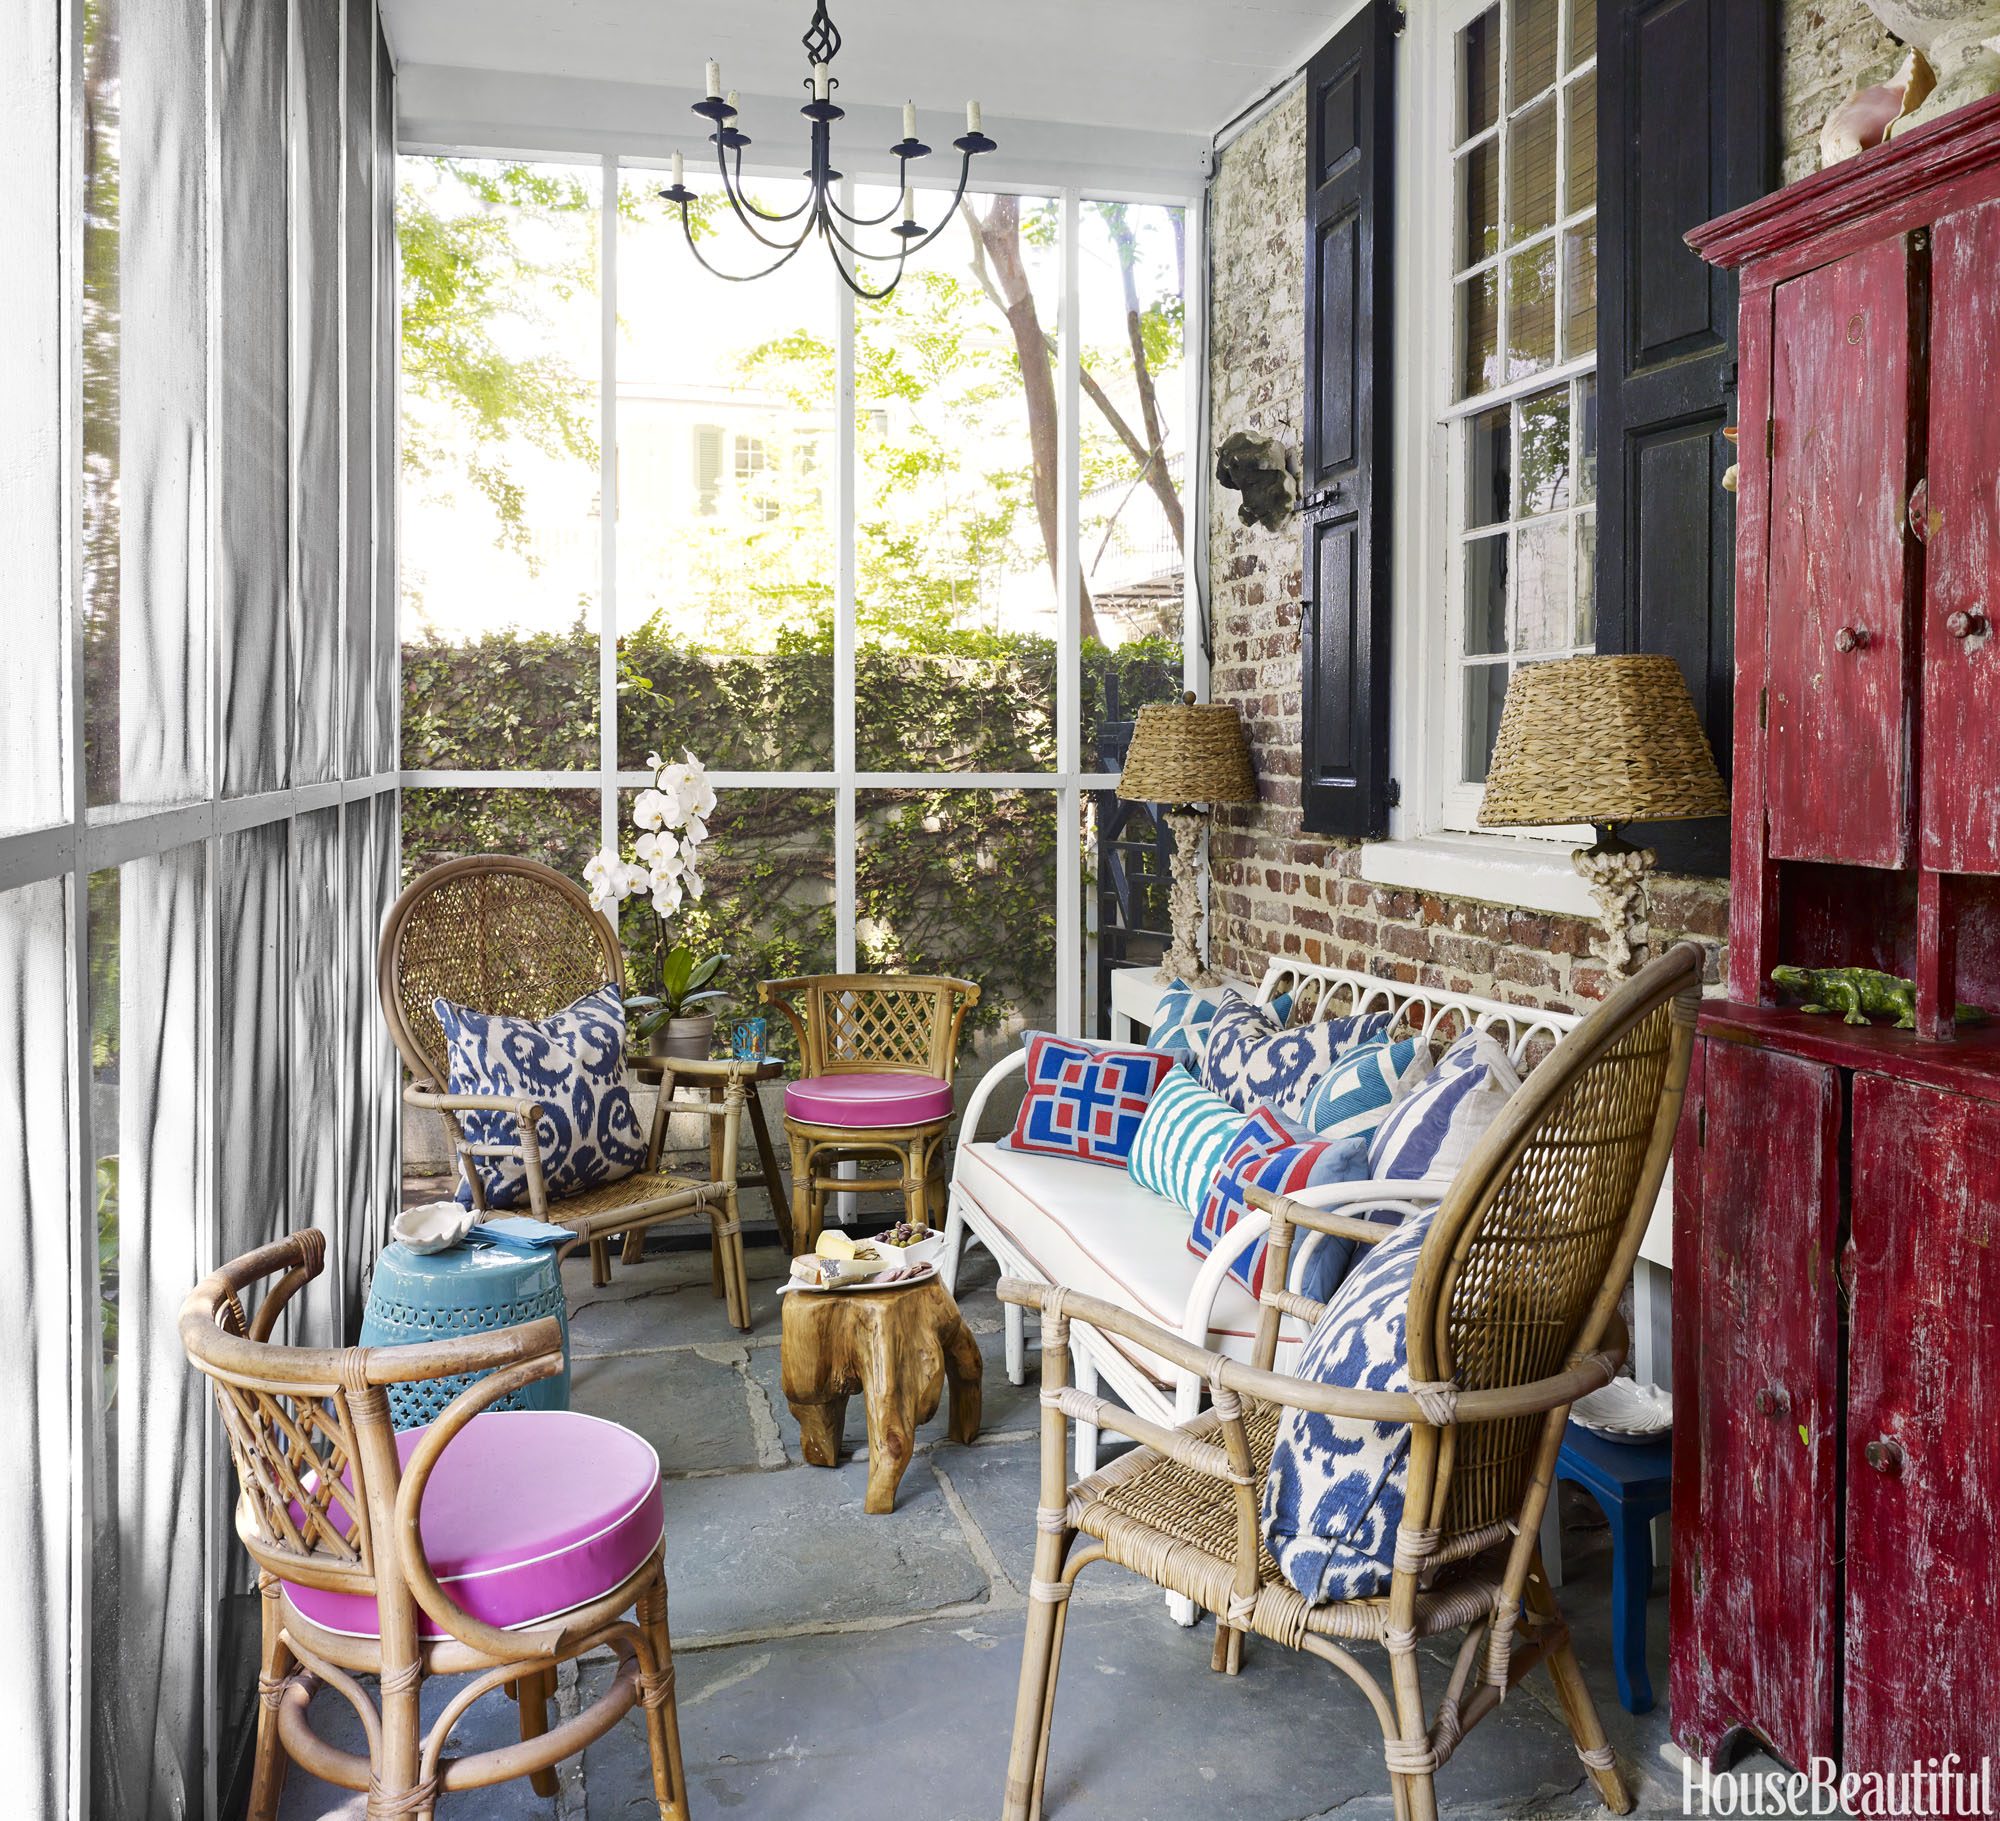 28 Dreamy Home Offices With Libraries For Creative Inspiration: 30 Best Porch Decorating Ideas